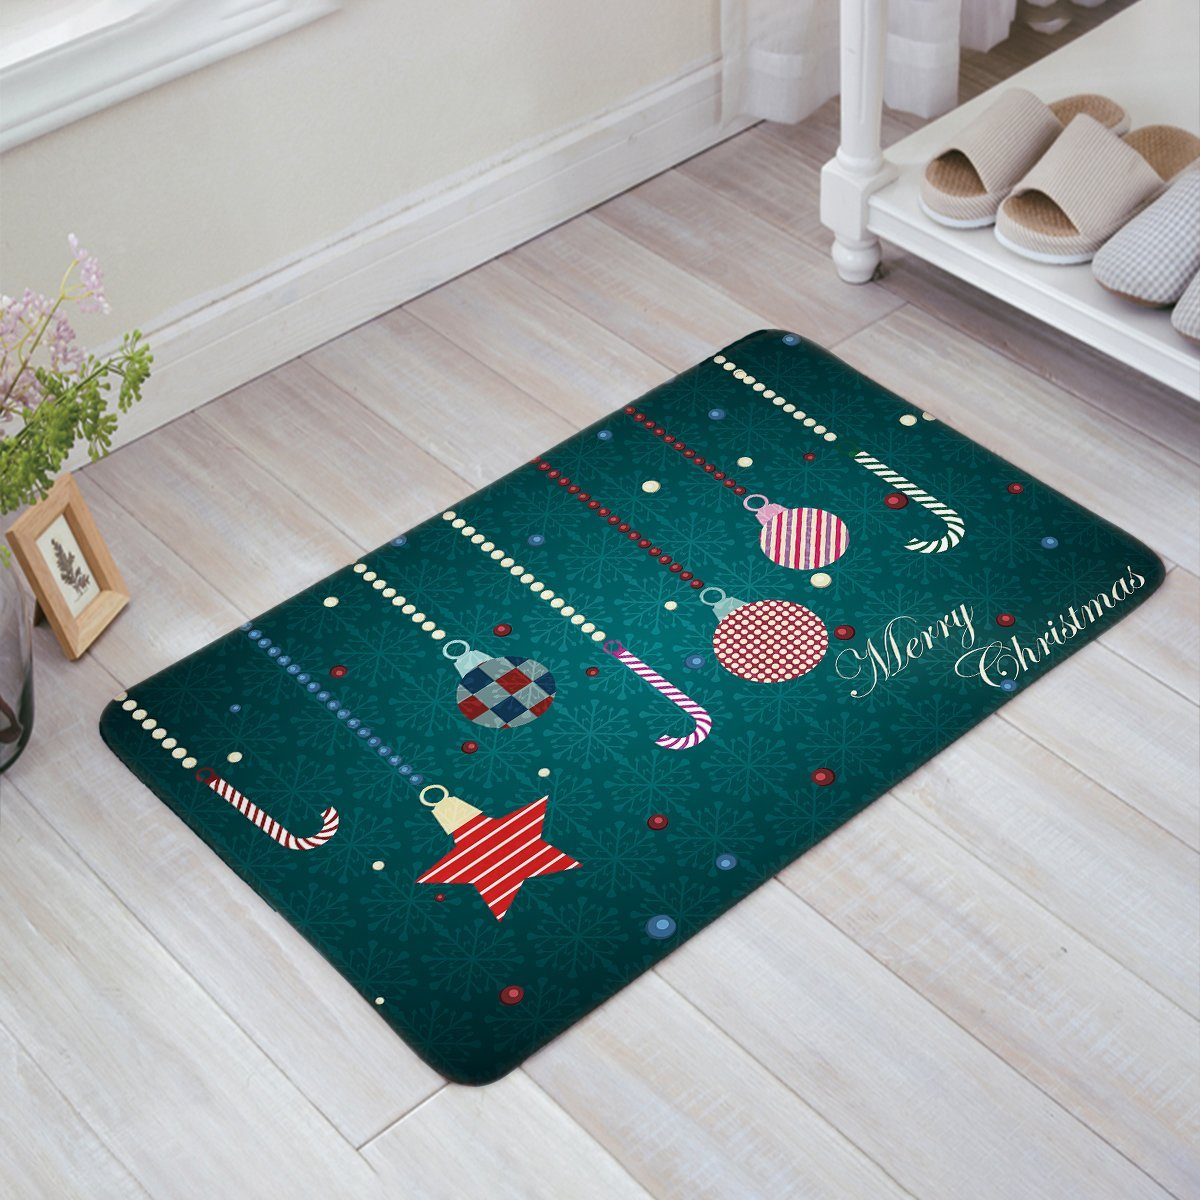 Classical Christmas Ornaments Merry Christmas Doormat